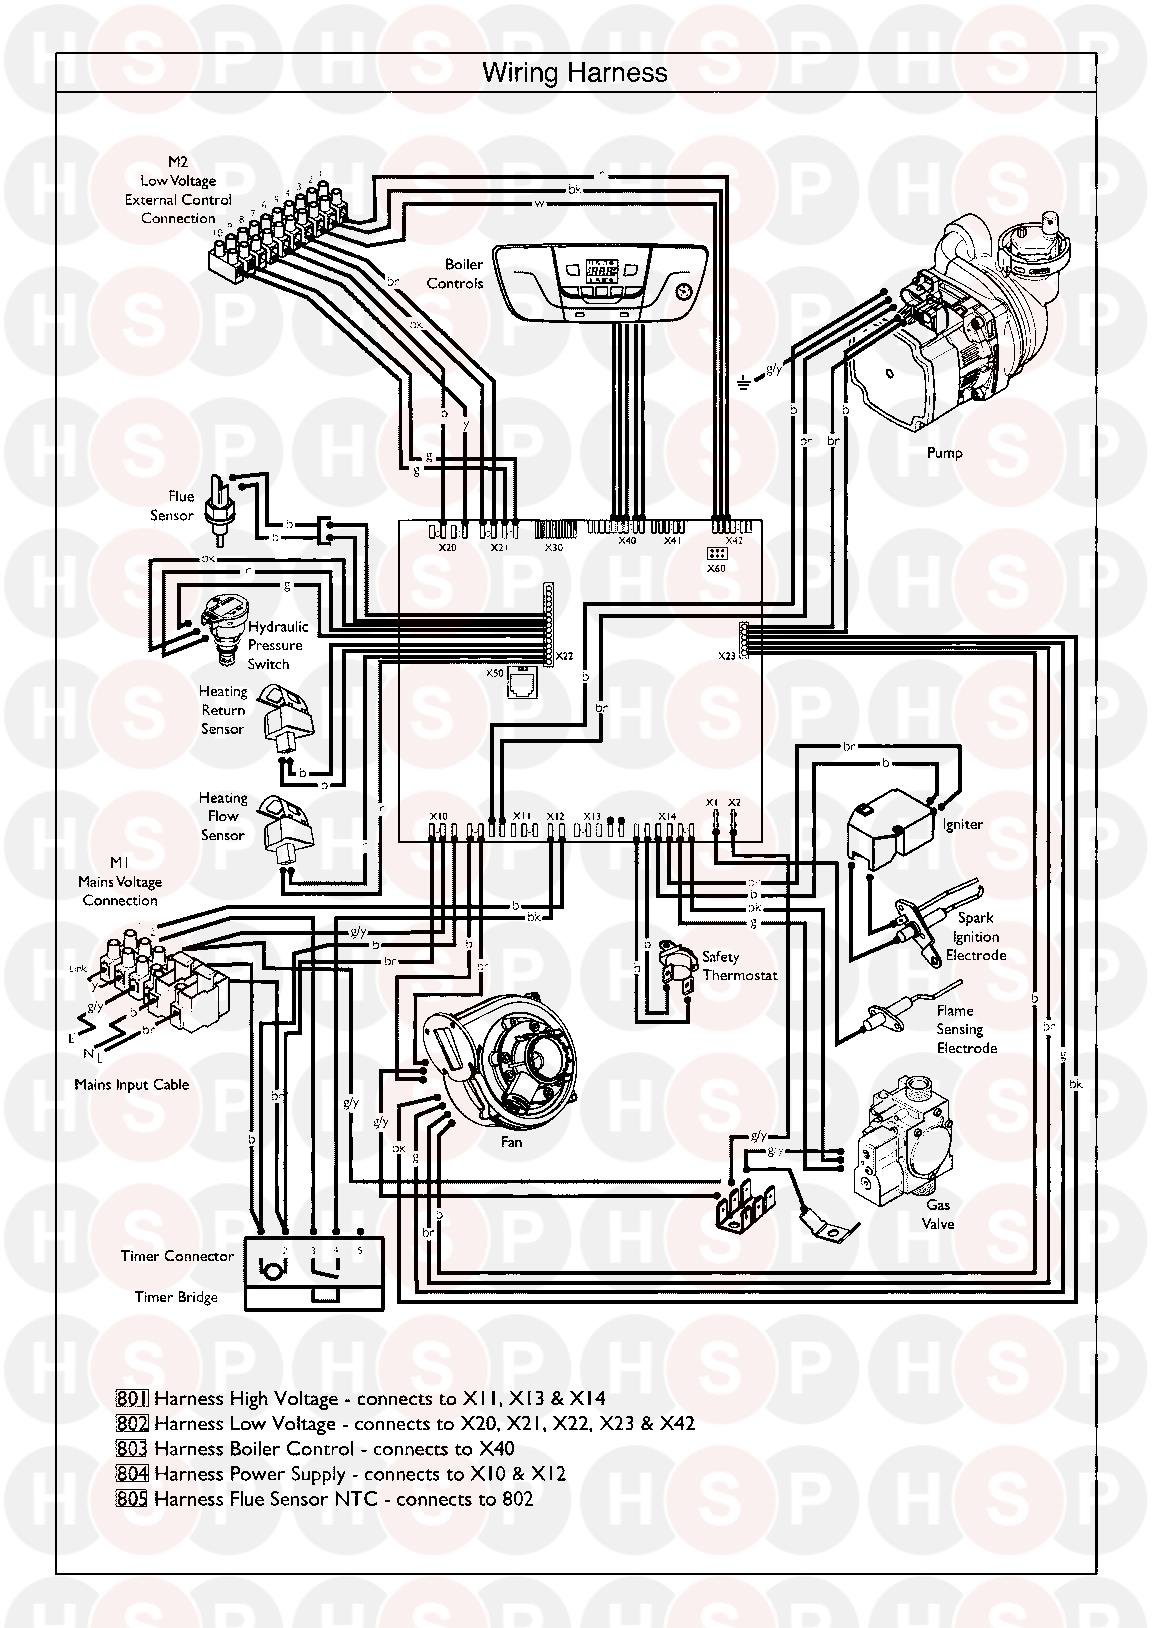 501518108477618714 together with 2009 Chrysler Pt Cruiser Manual Transmission Schematic furthermore Mazda 2 0 Engine Diagram additionally Baxi System Boiler Wiring Diagram moreover Polaris Sportsman 500 Cooling Fan Diagram. on wiring schematic for 1998 mazda mx